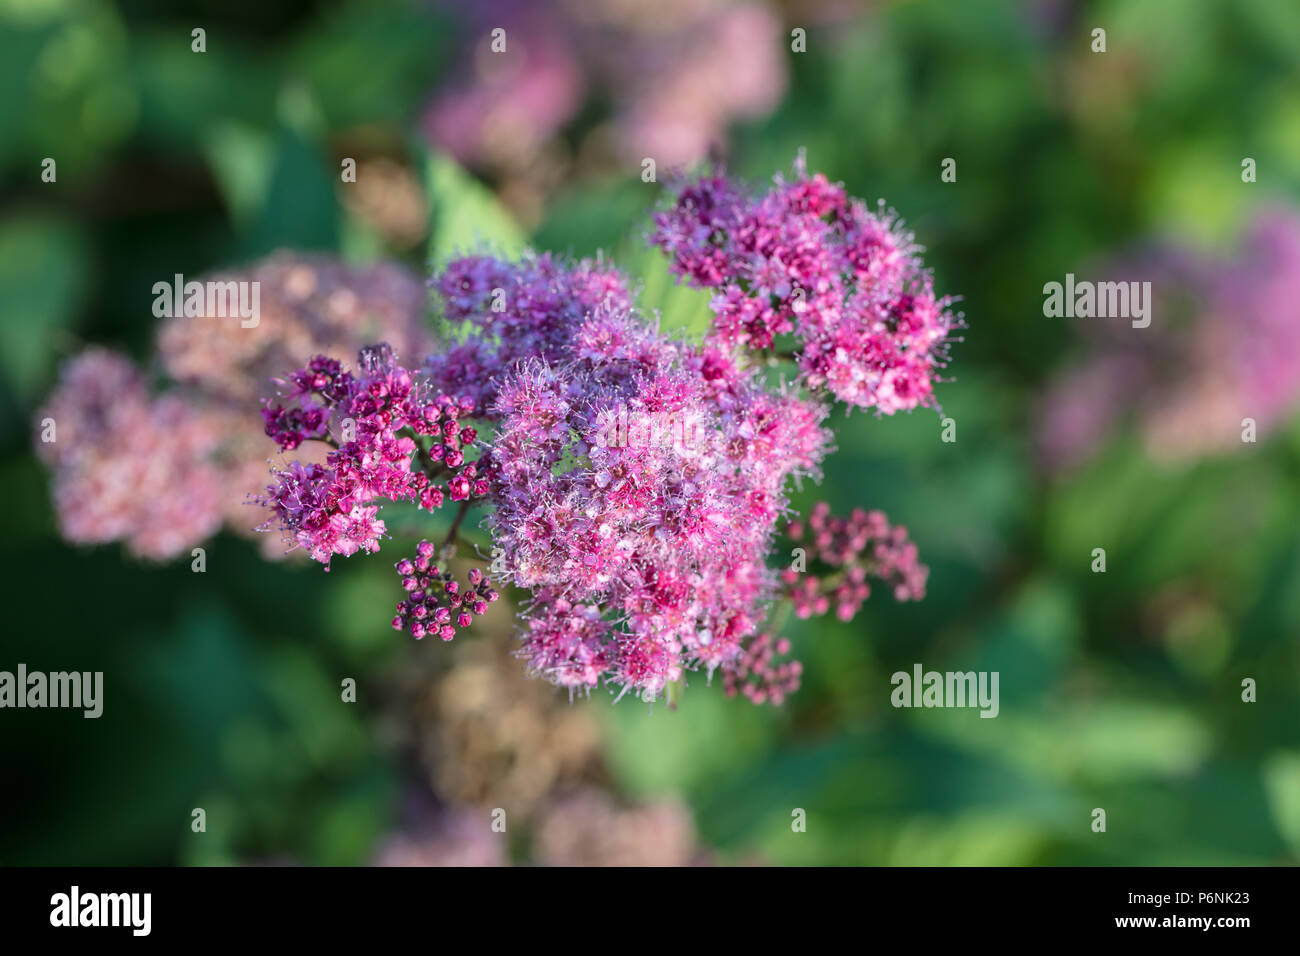 Spiraea Bumalda Stock Photos Spiraea Bumalda Stock Images Alamy